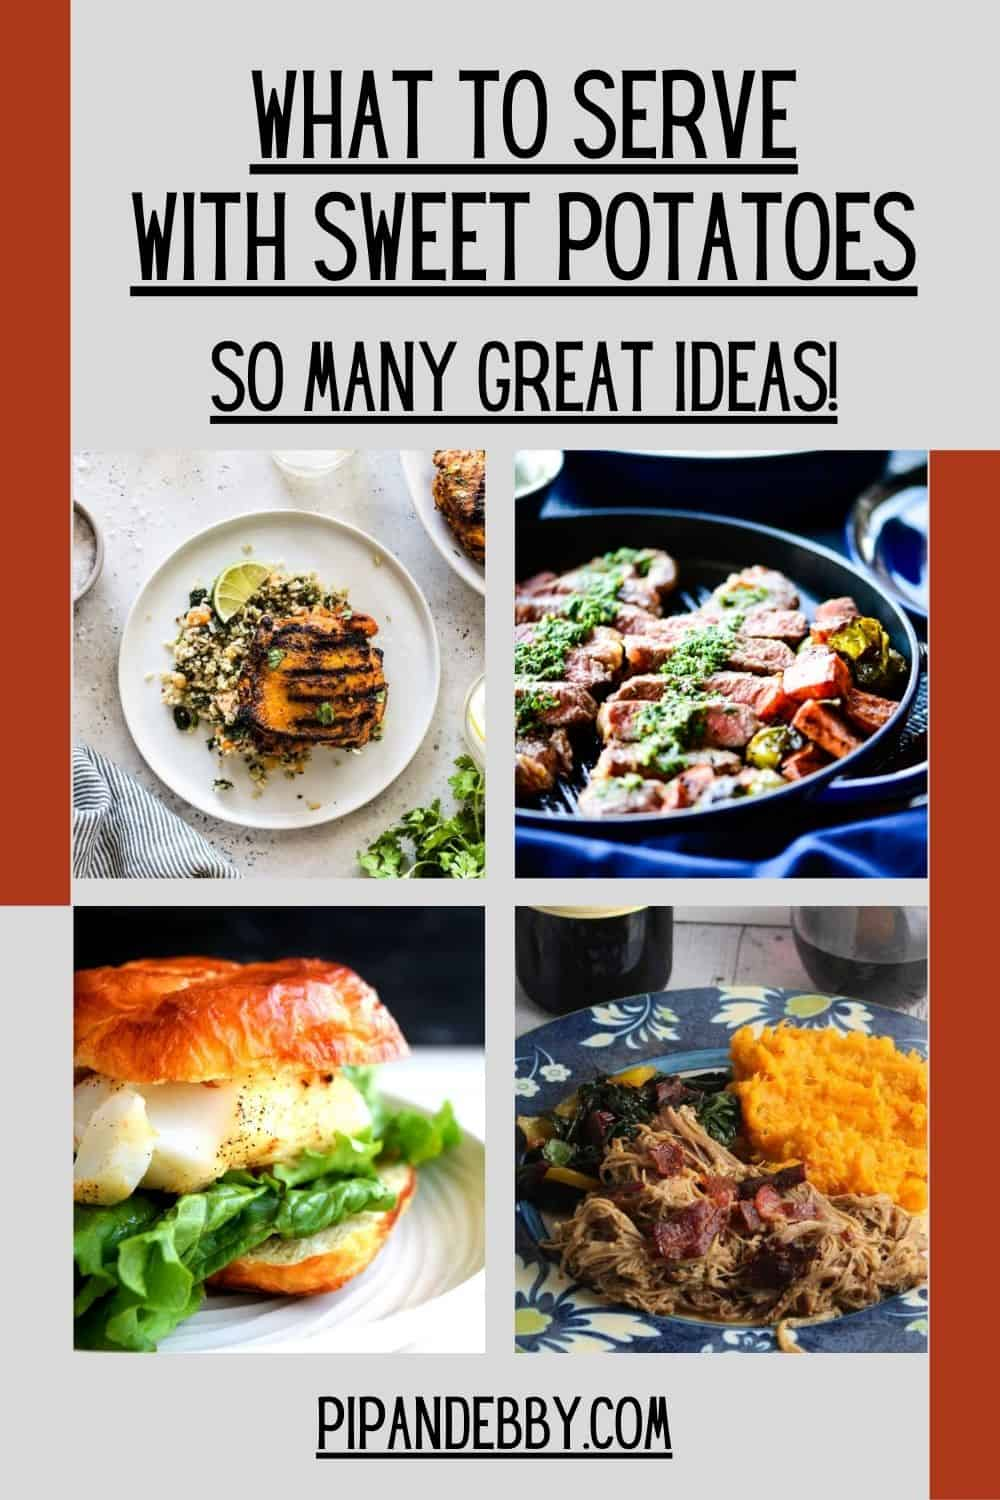 Pinterest roundup graphic with 4 recipe options to serve with sweet potatoes.